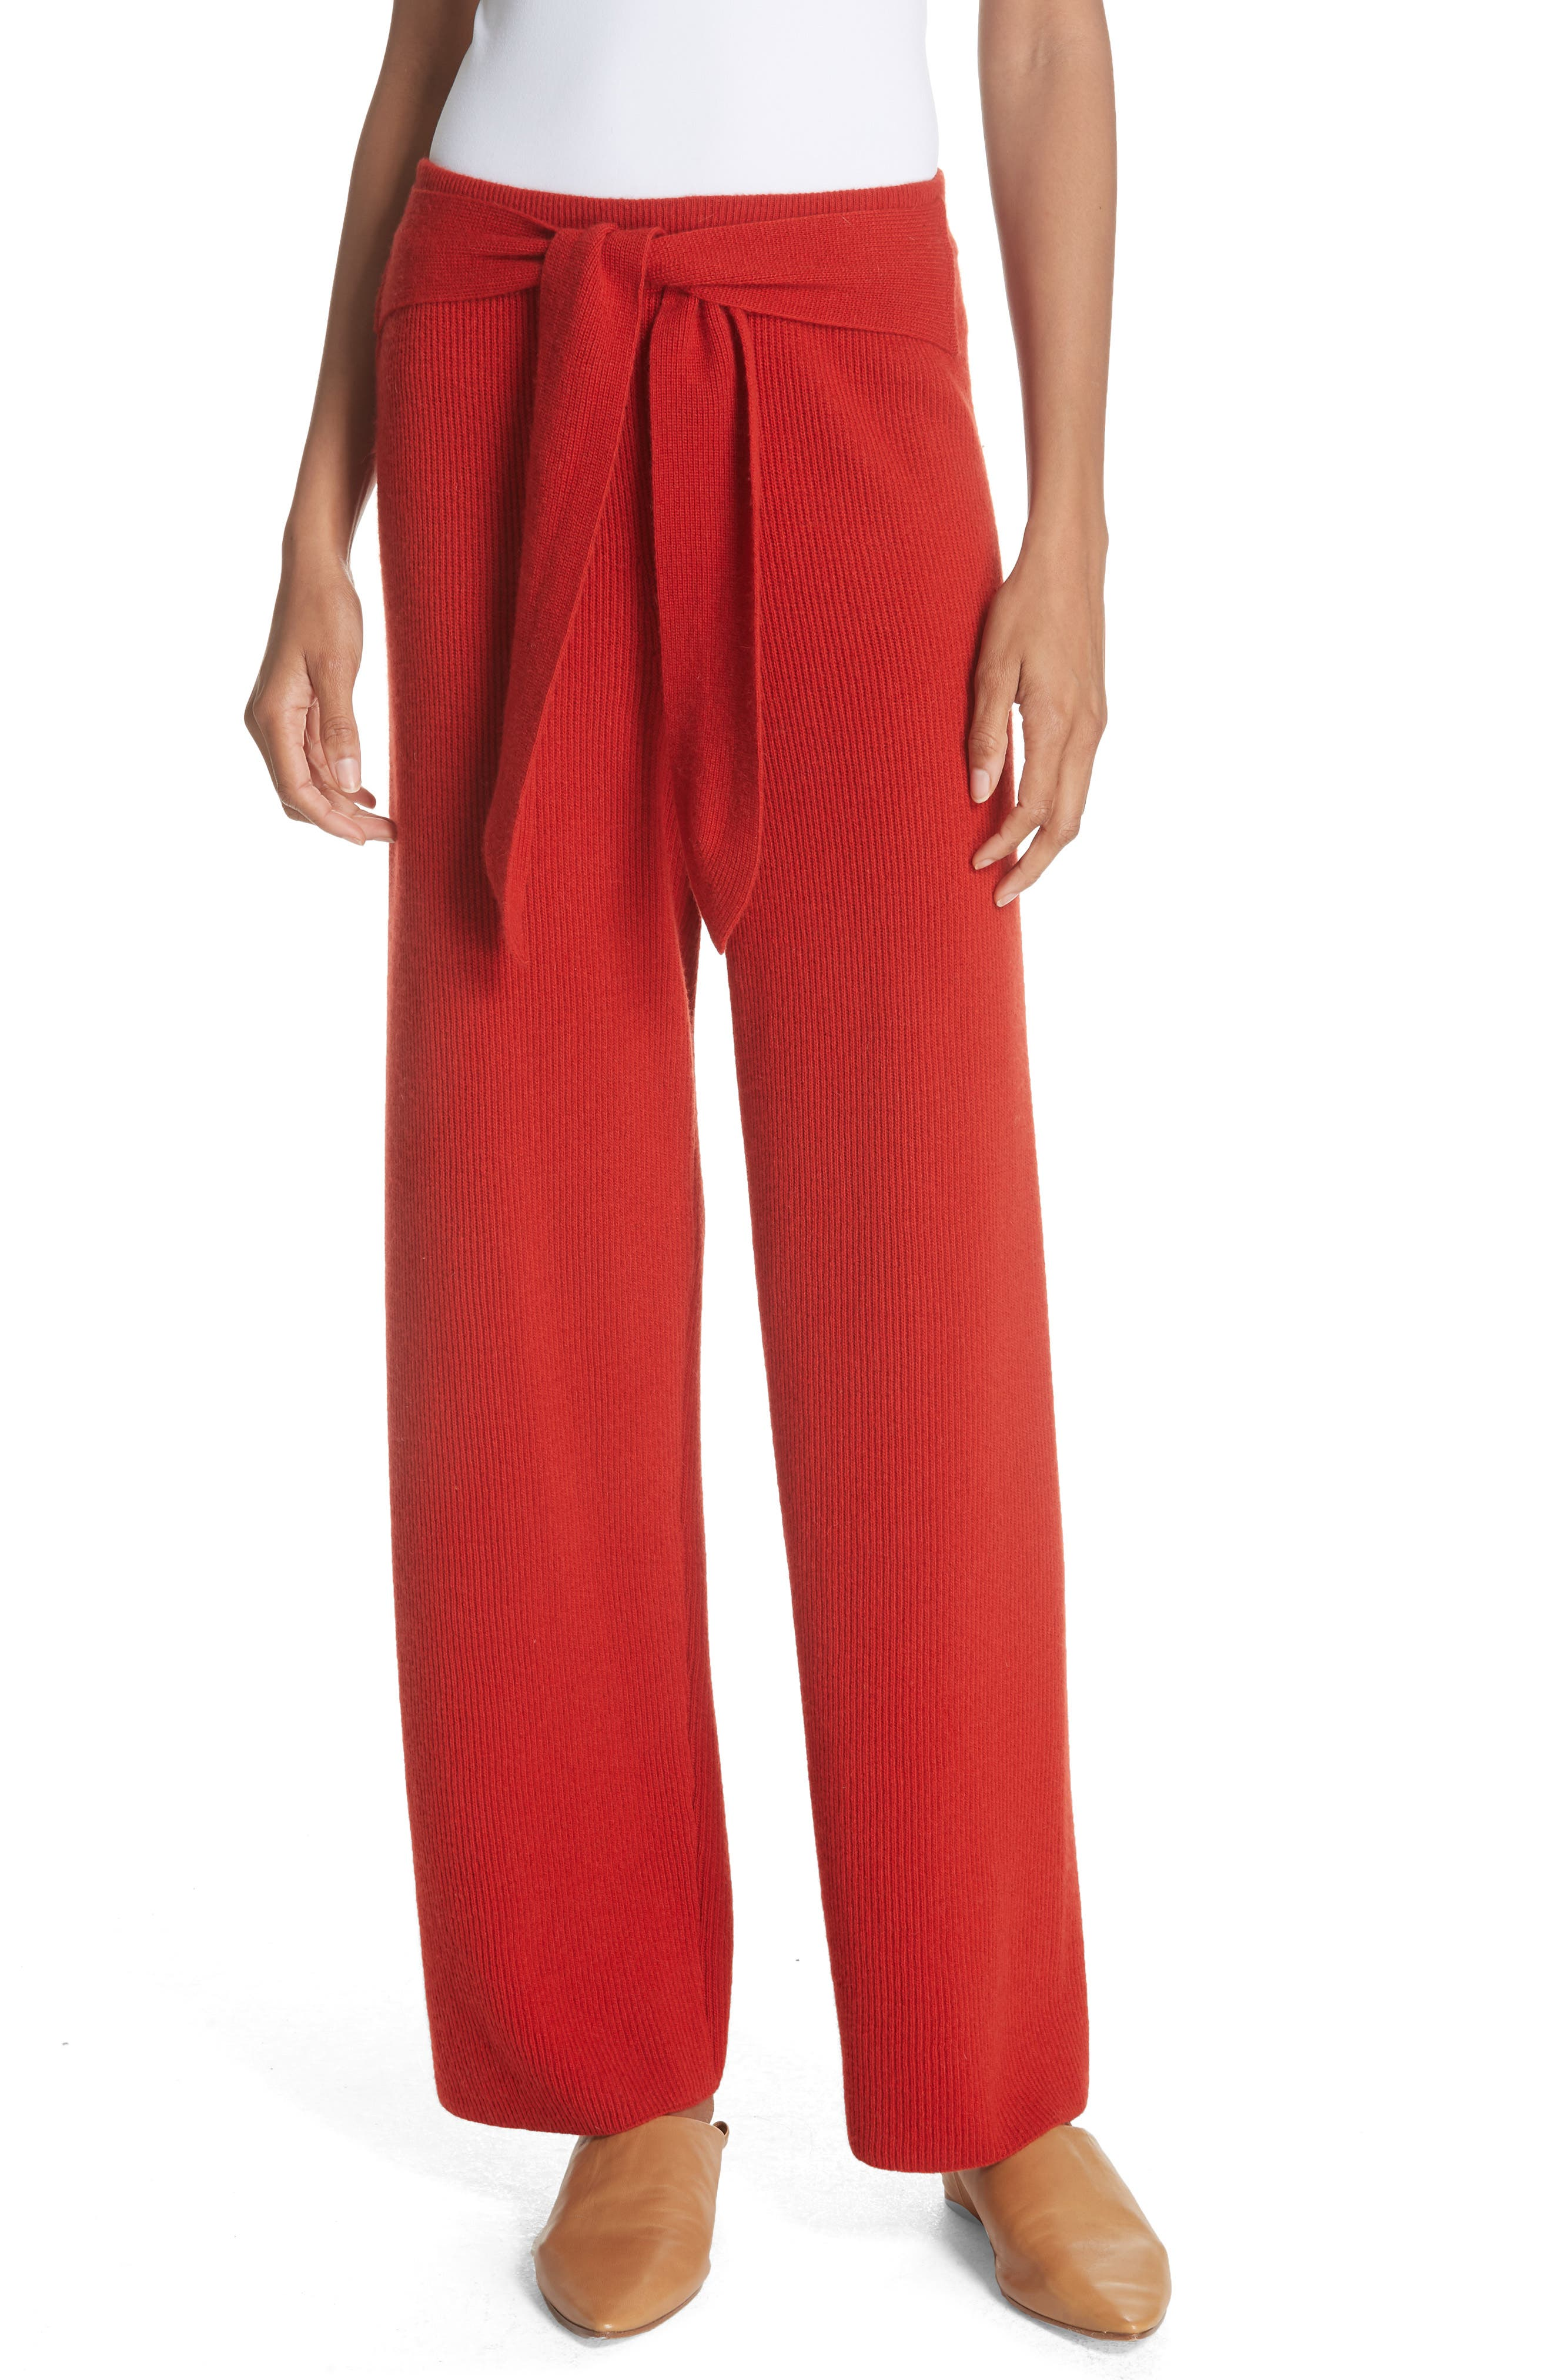 Tigre Merino Wool & Cashmere Blend Pants,                             Main thumbnail 1, color,                             RED